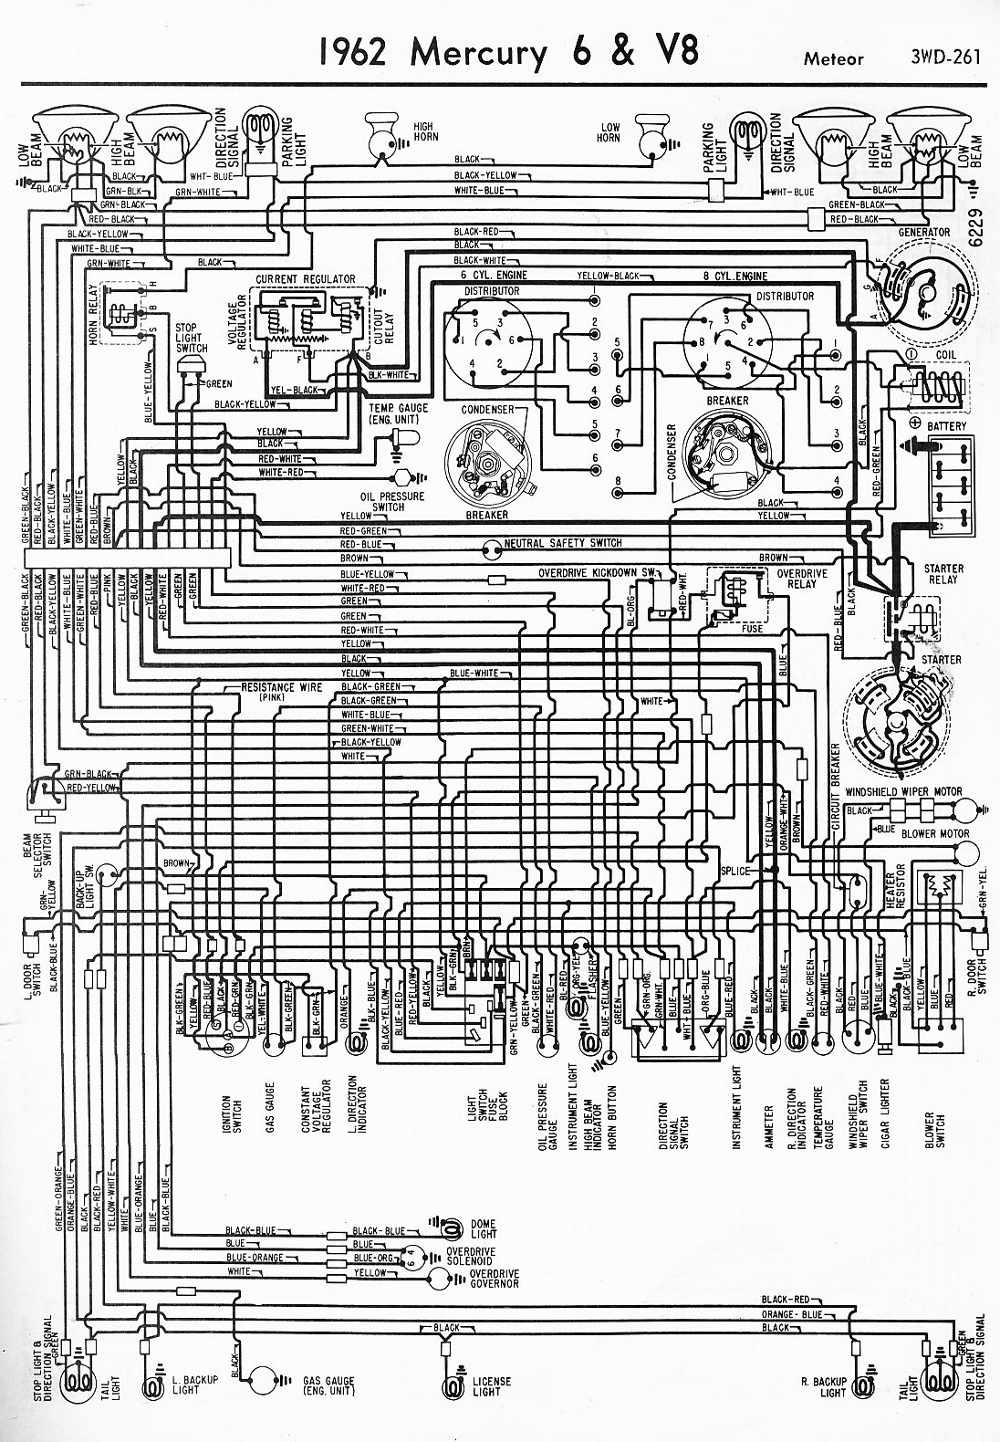 5 7 mercruiser ignition wiring diagram 5 free engine image for user manual